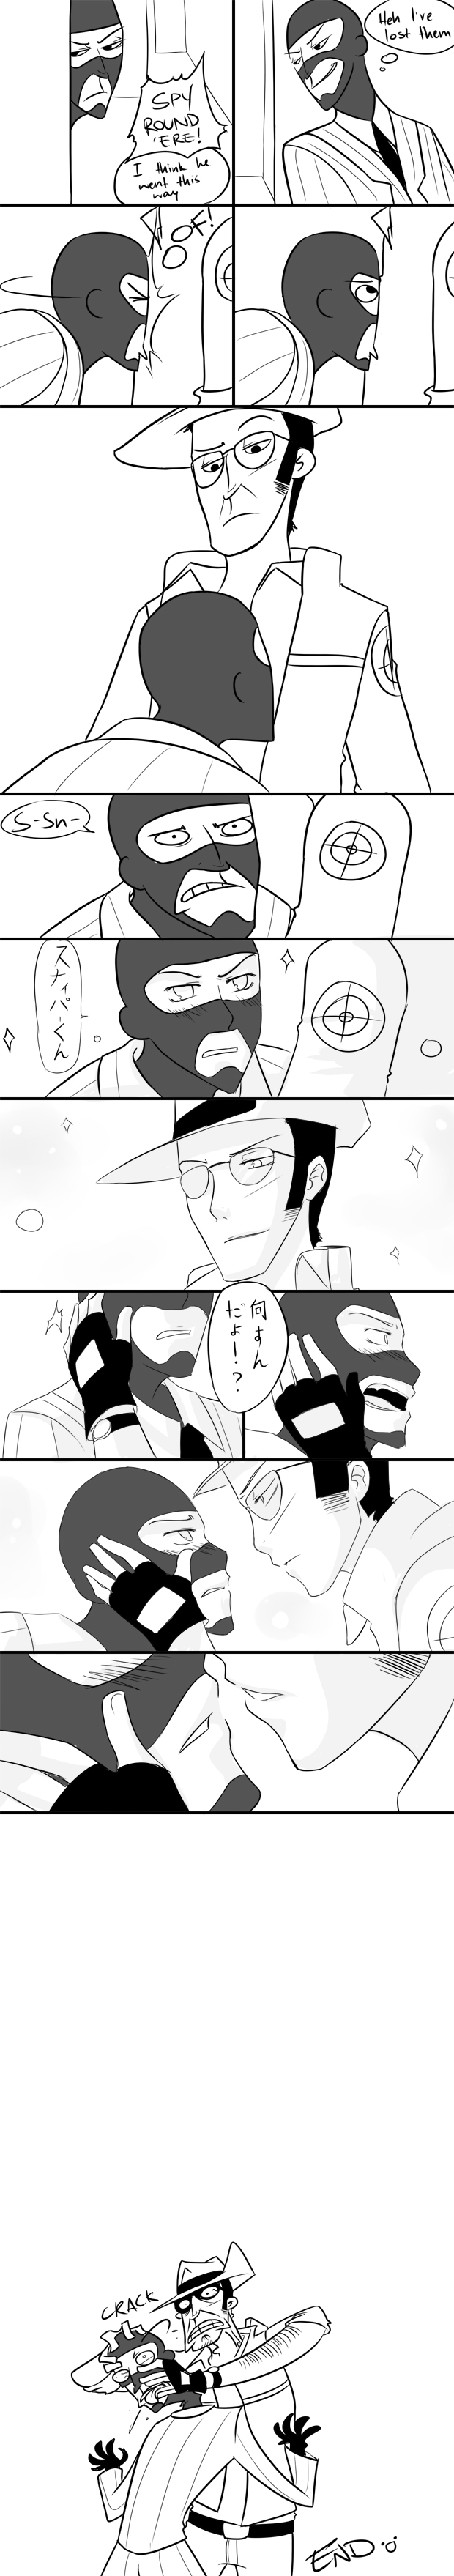 Internet Lulz Continued - Page 4 TF2___Sho_shounen_by_frzdragon